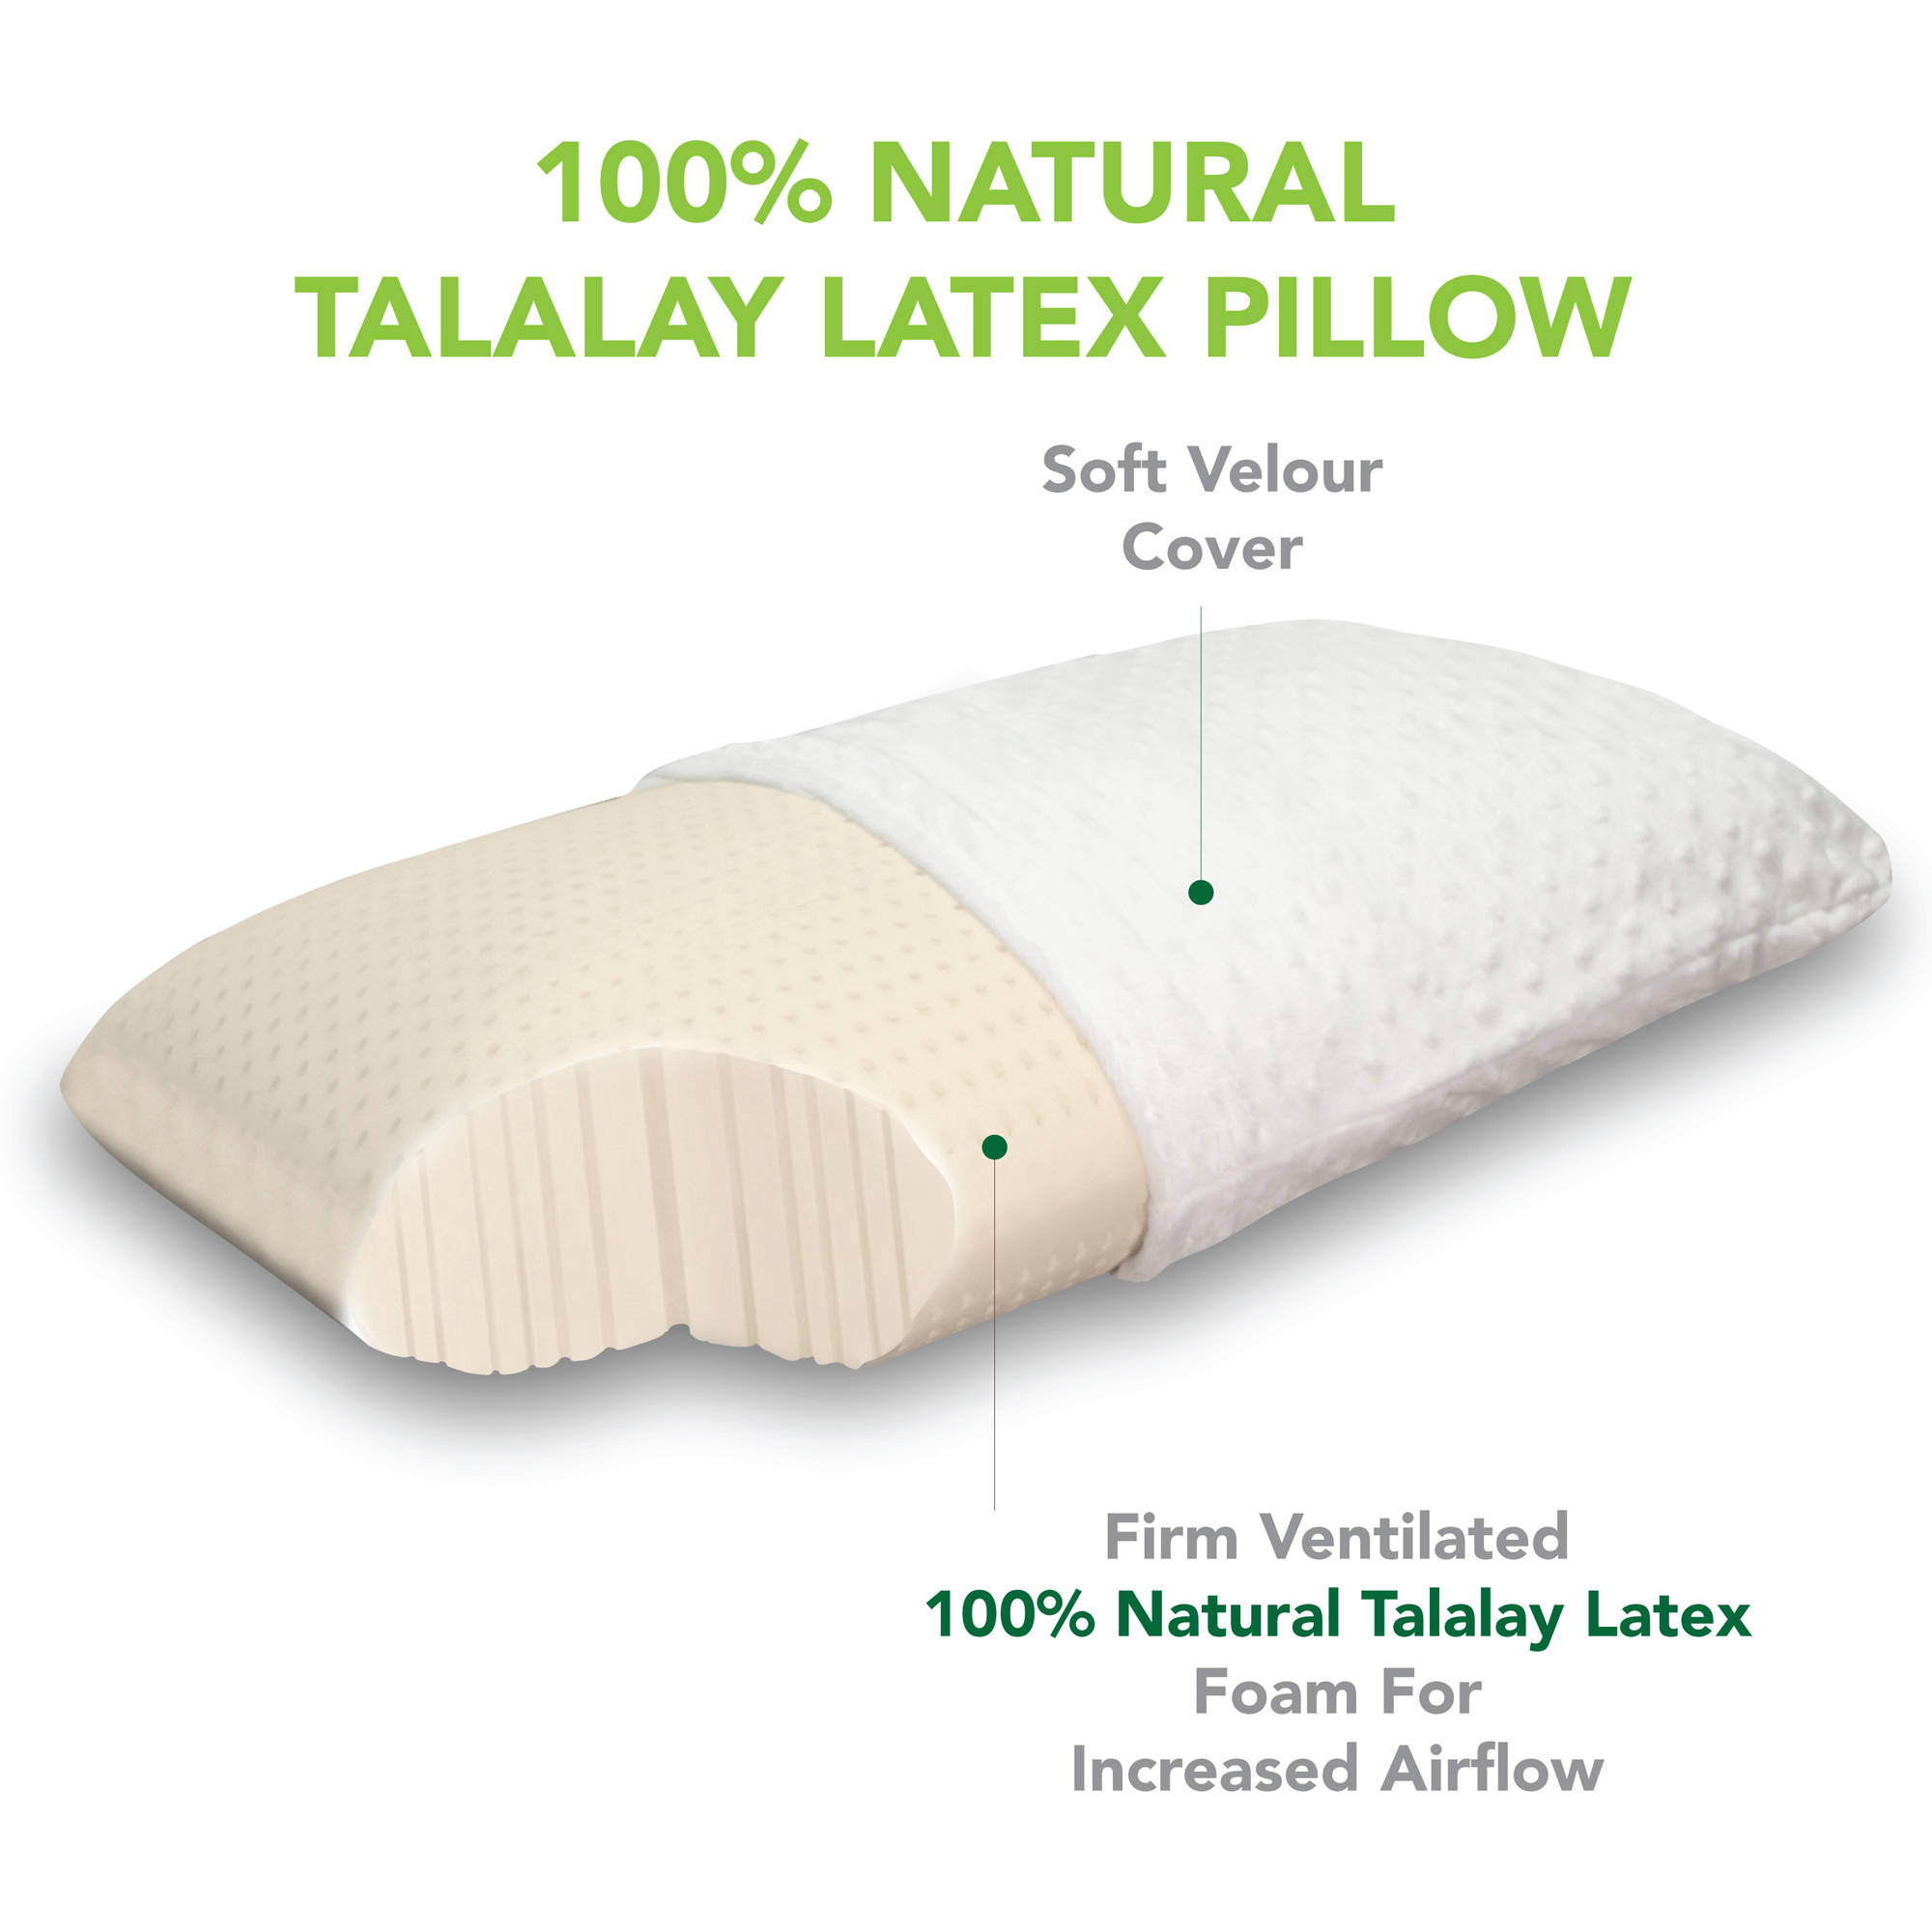 Modern Sleep Talalay Latex Pillow : Latex Foam Bed Pillows premium pillows latex and memory foam sheridan, memory foam pillow care ...